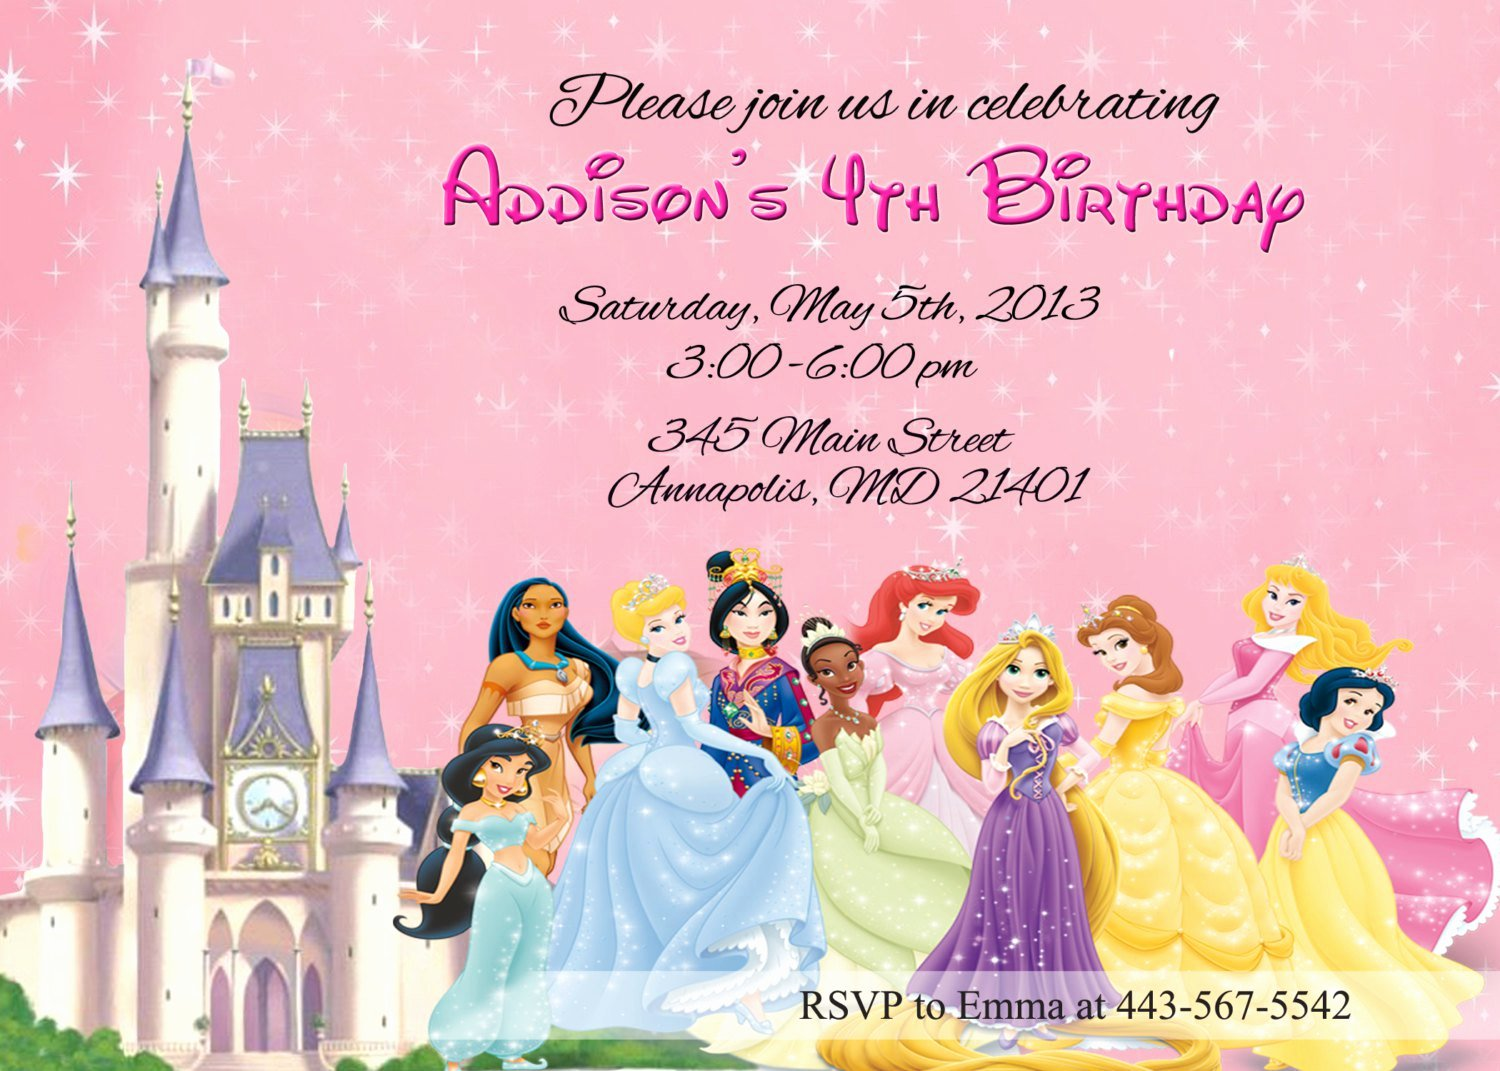 Disney Princess Invitation Template Luxury Disney Princesses Birthday Invitations Disney Princess